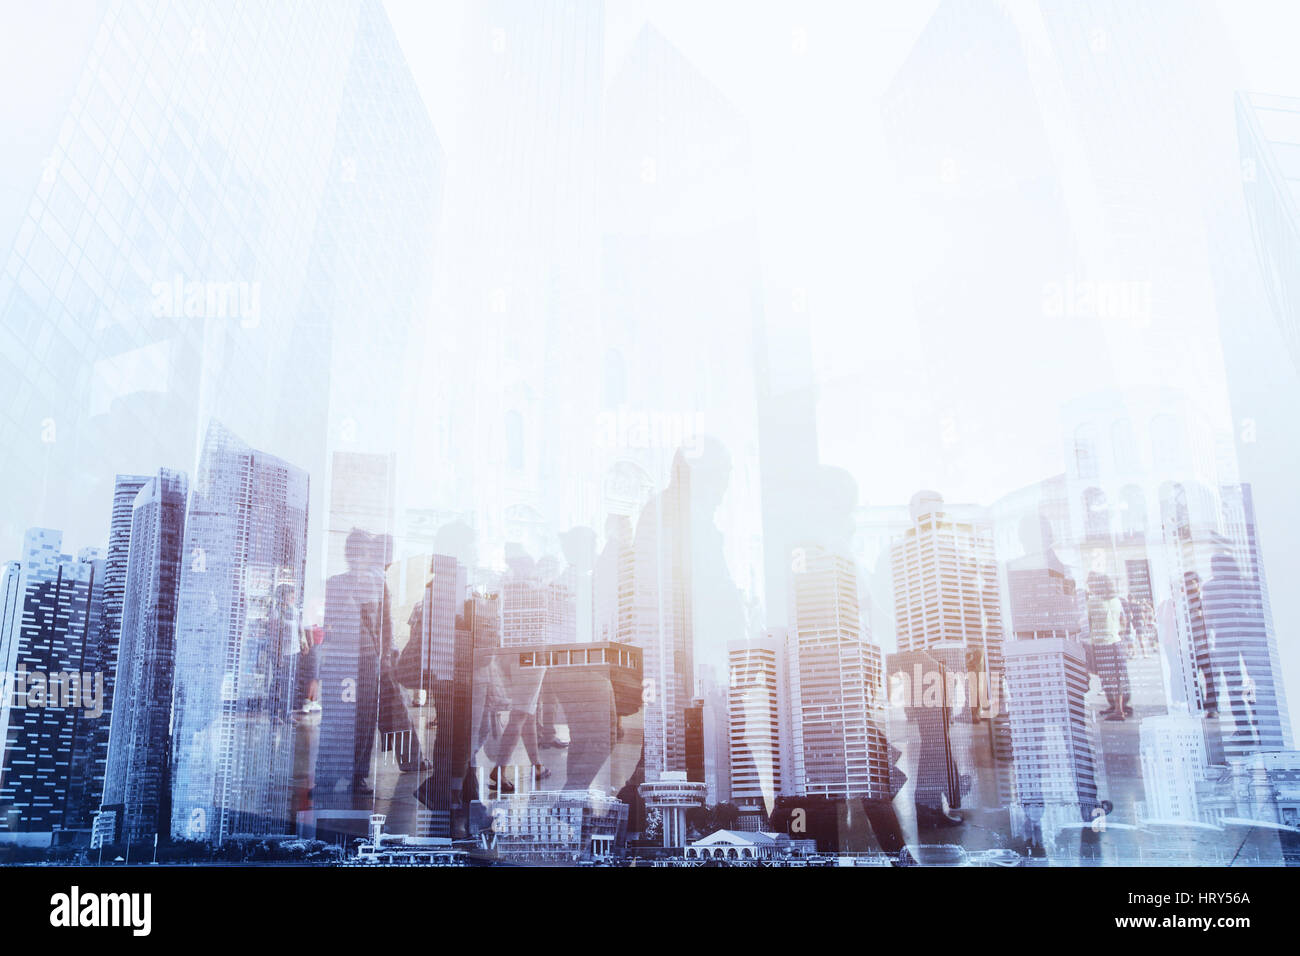 double exposure of business people walking on the street of modern city, urban lifestyle background - Stock Image